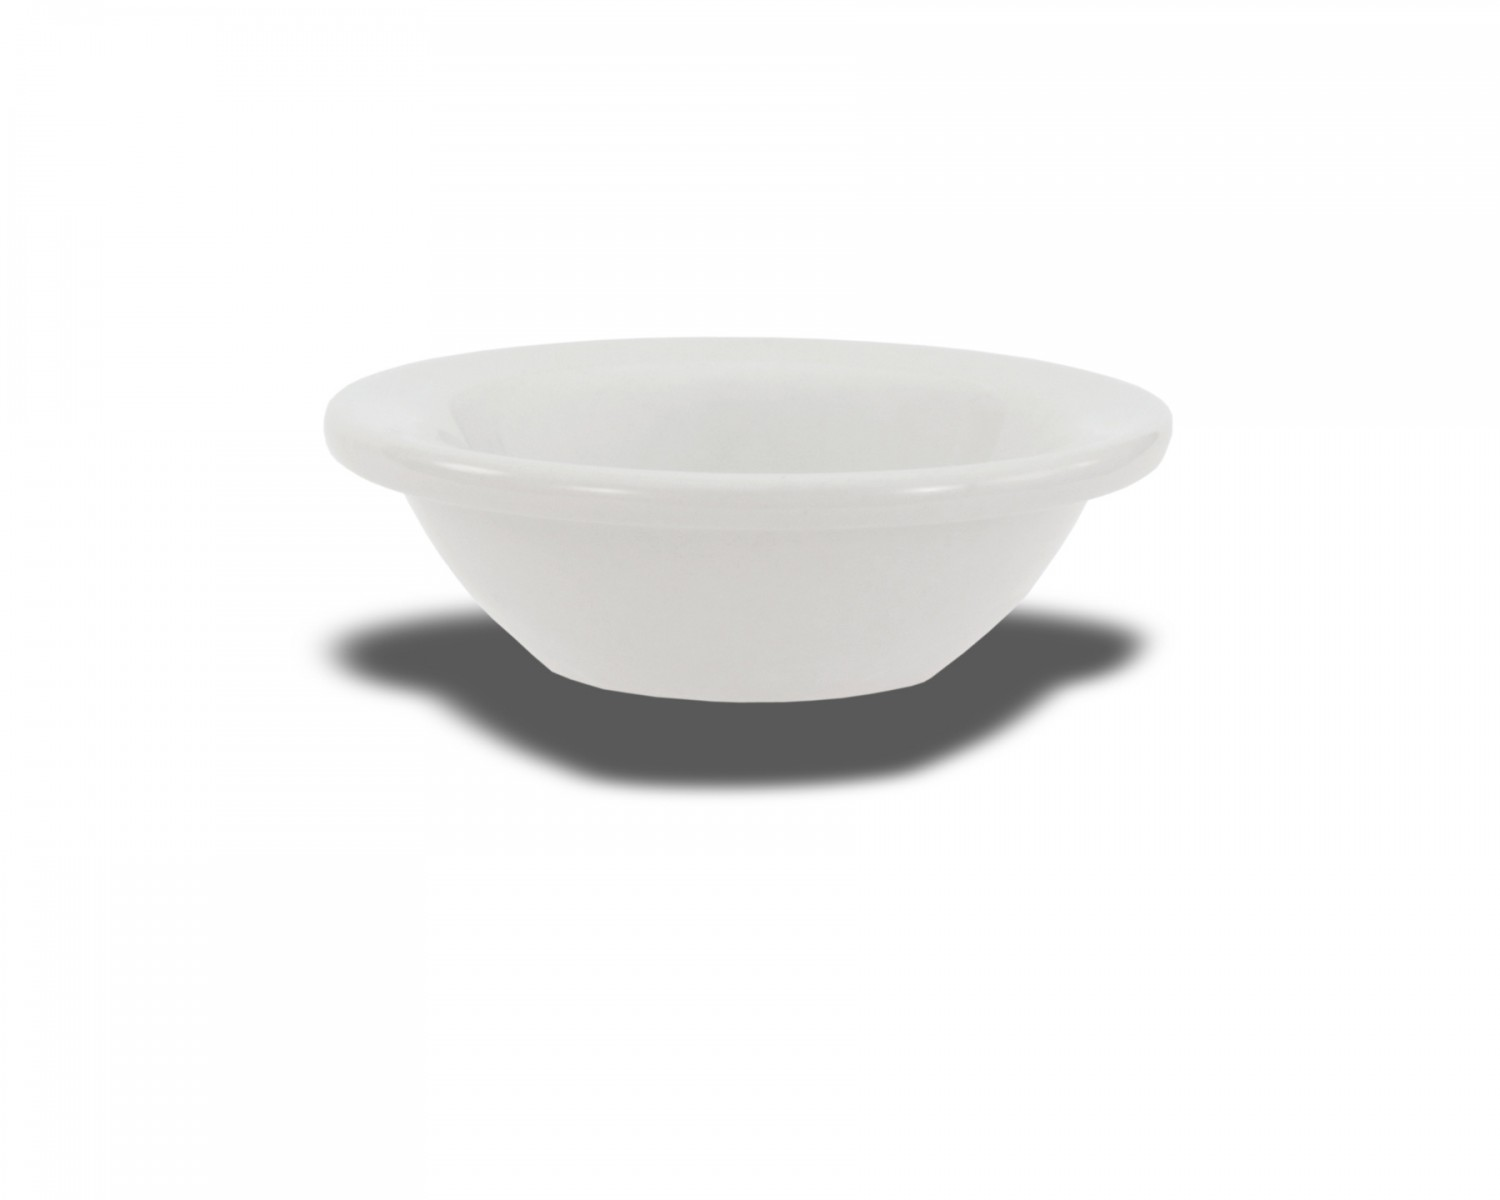 Crestware AL31 4 oz. China Fruit Dish - 3 doz